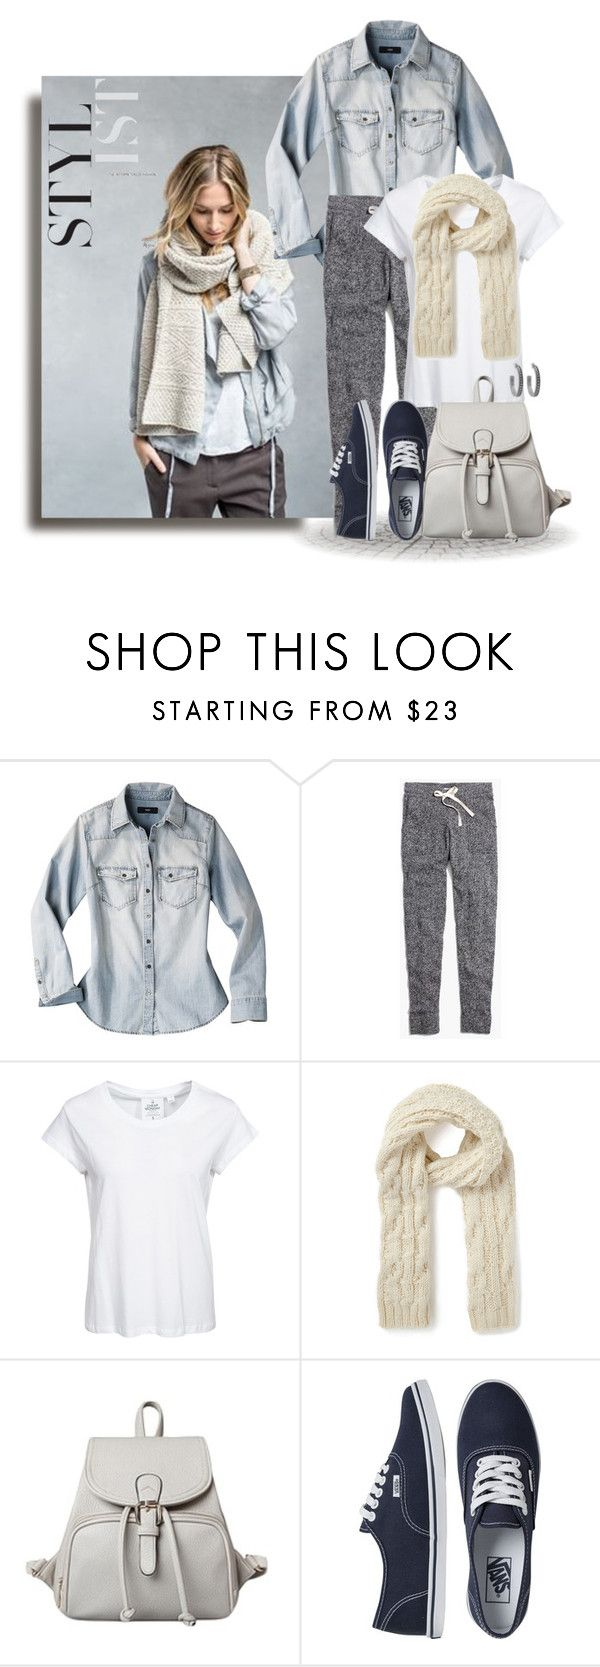 """""""Monday Casual"""" by leegal57 ❤ liked on Polyvore featuring mode, Mossimo, Madewell, Cheap Monday, Warehouse, Vans et House of Harlow 1960"""